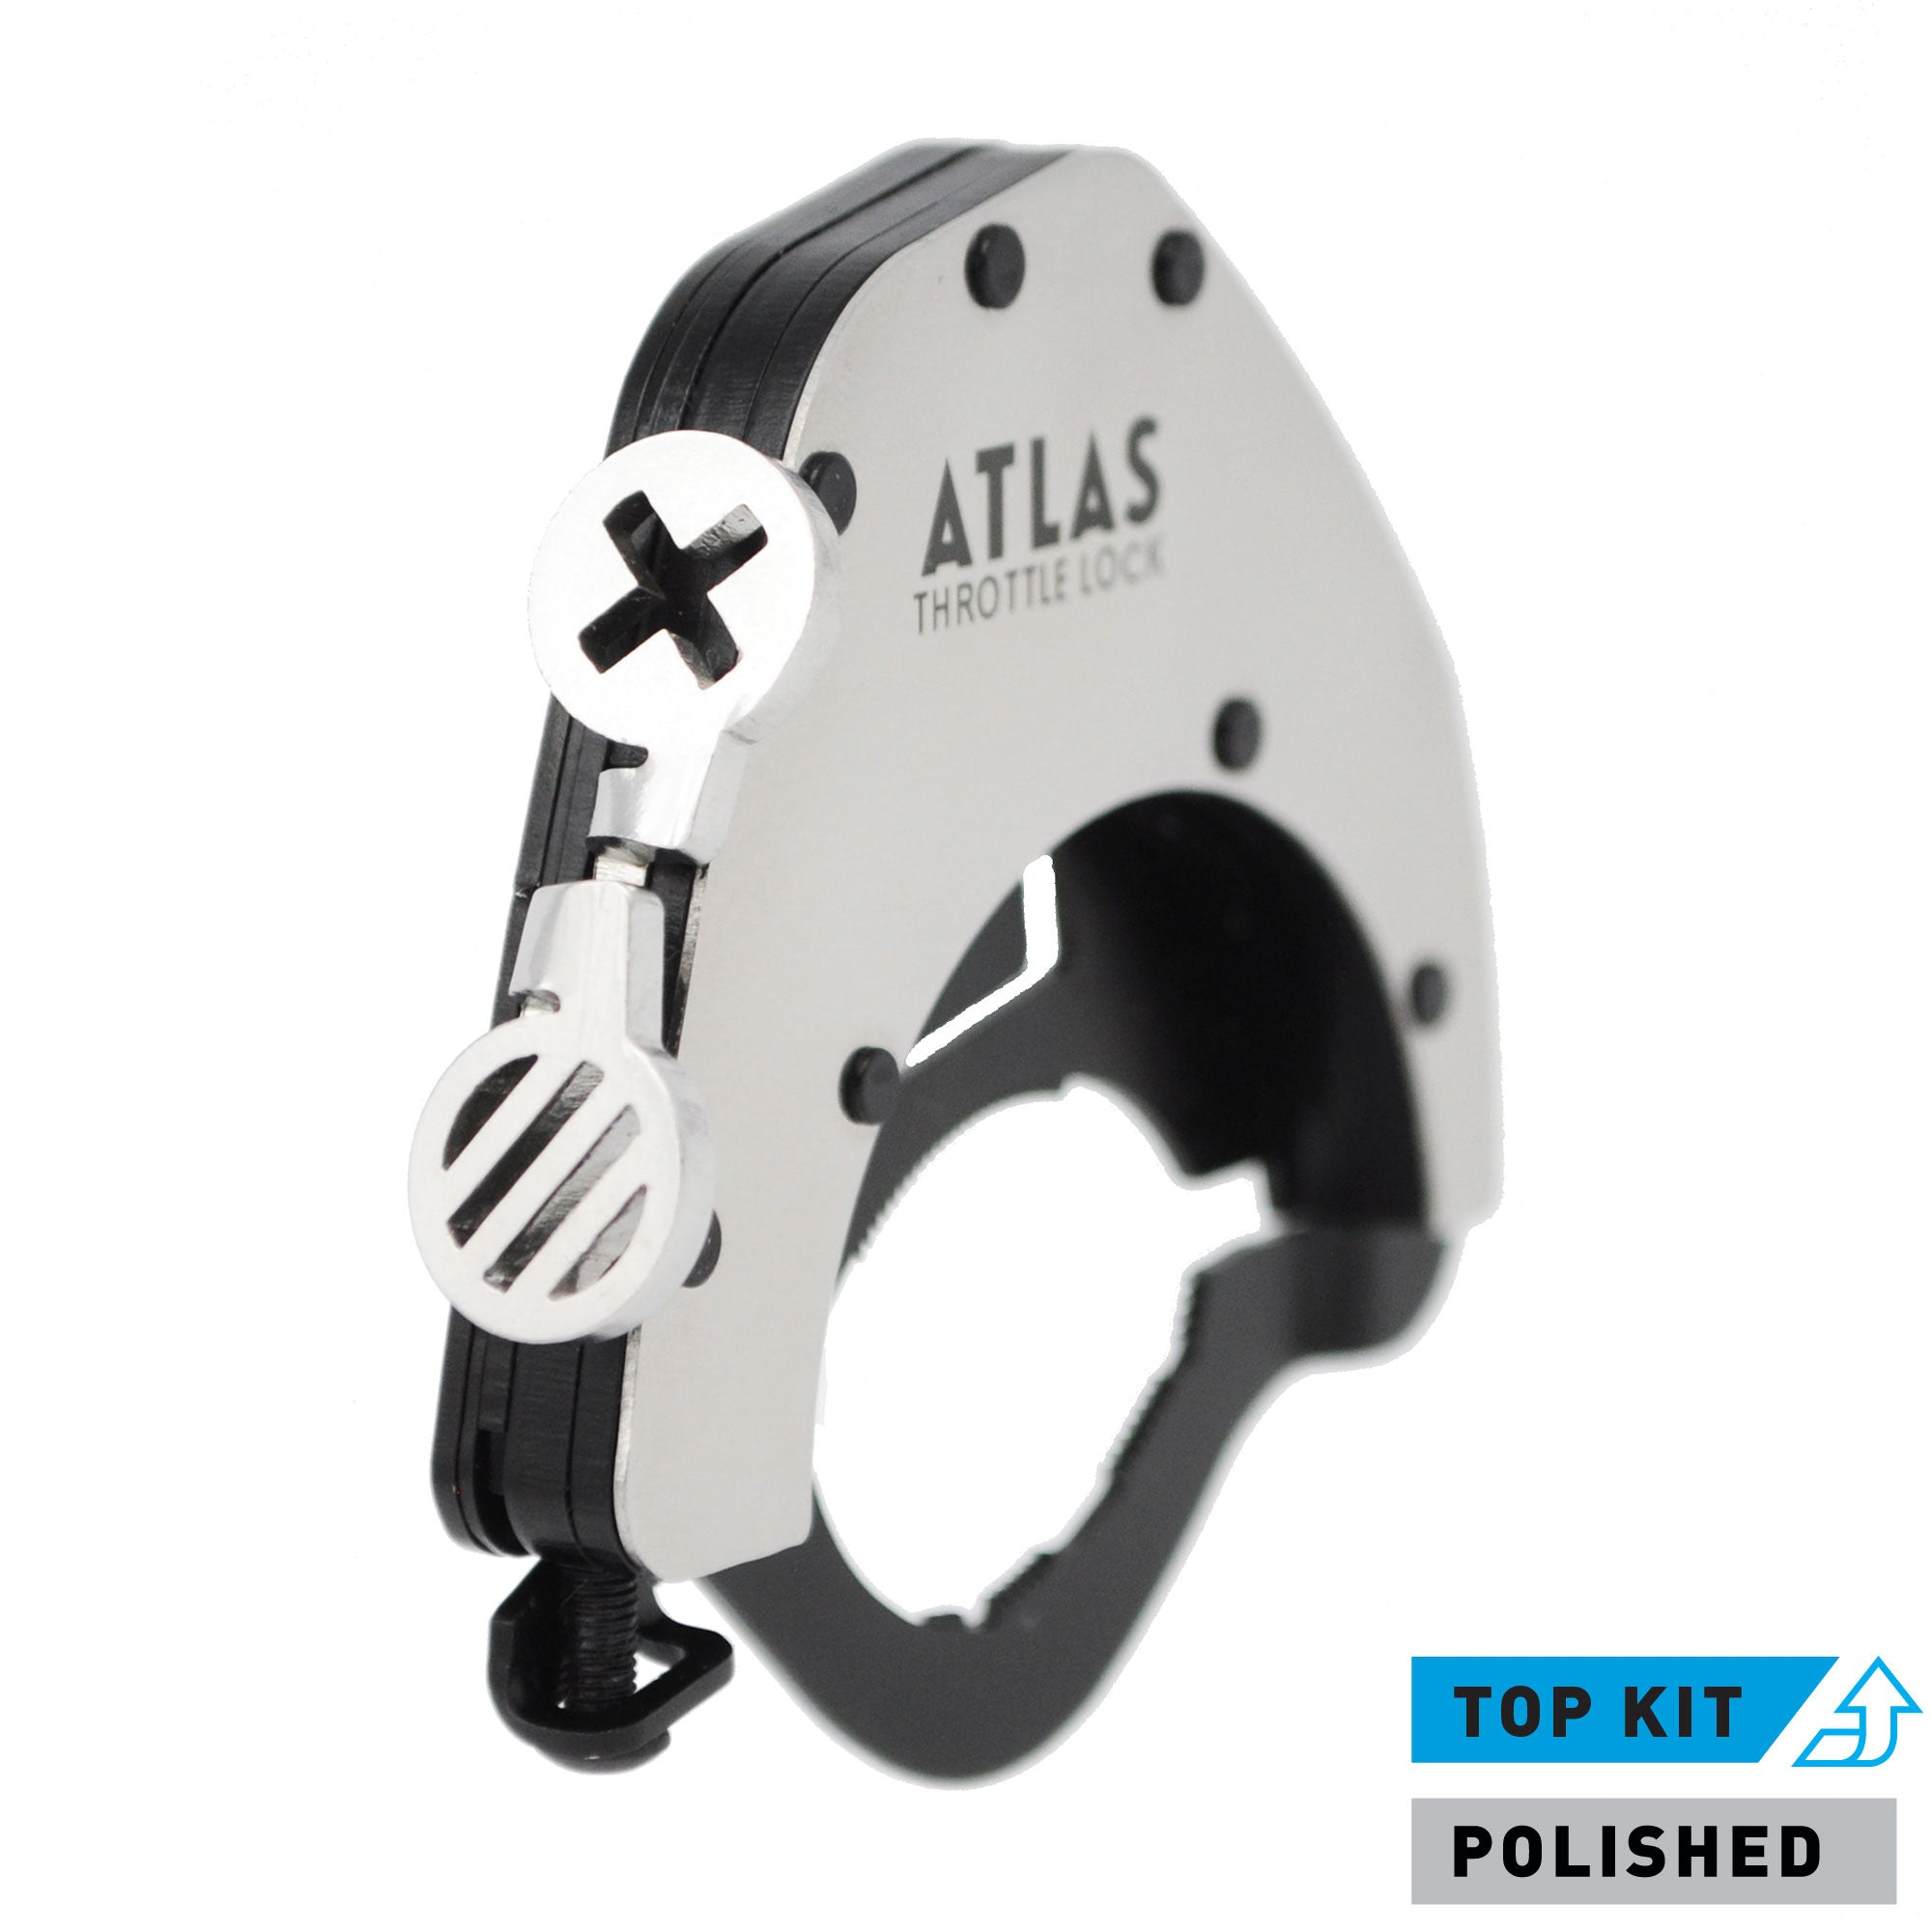 Energica Motorcycles - ATLAS Throttle Lock